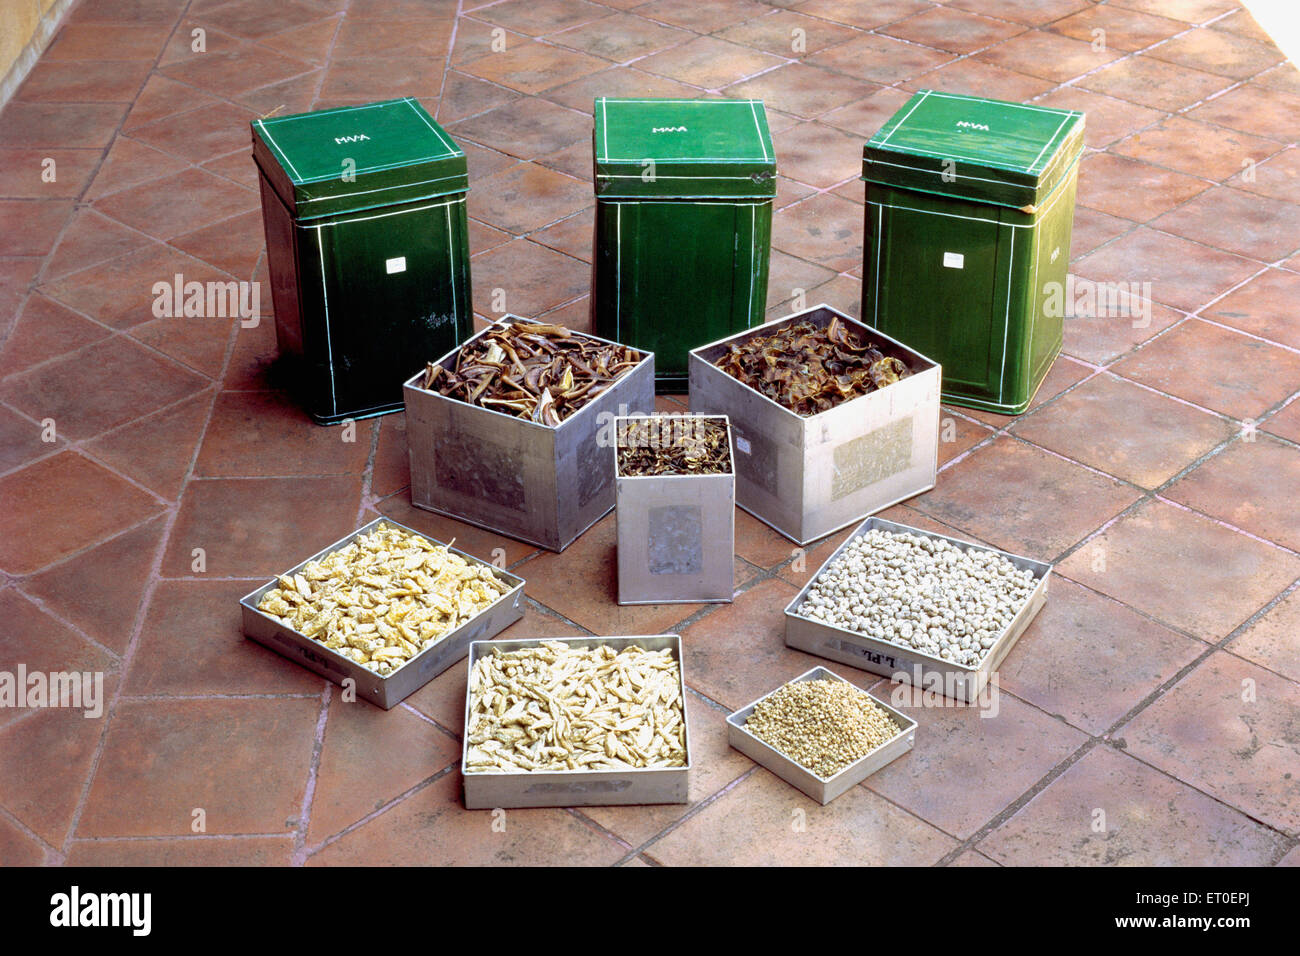 Special zinc tins with several dried items typically stored in them like mangoes slice brinjal chillies etc - Stock Image